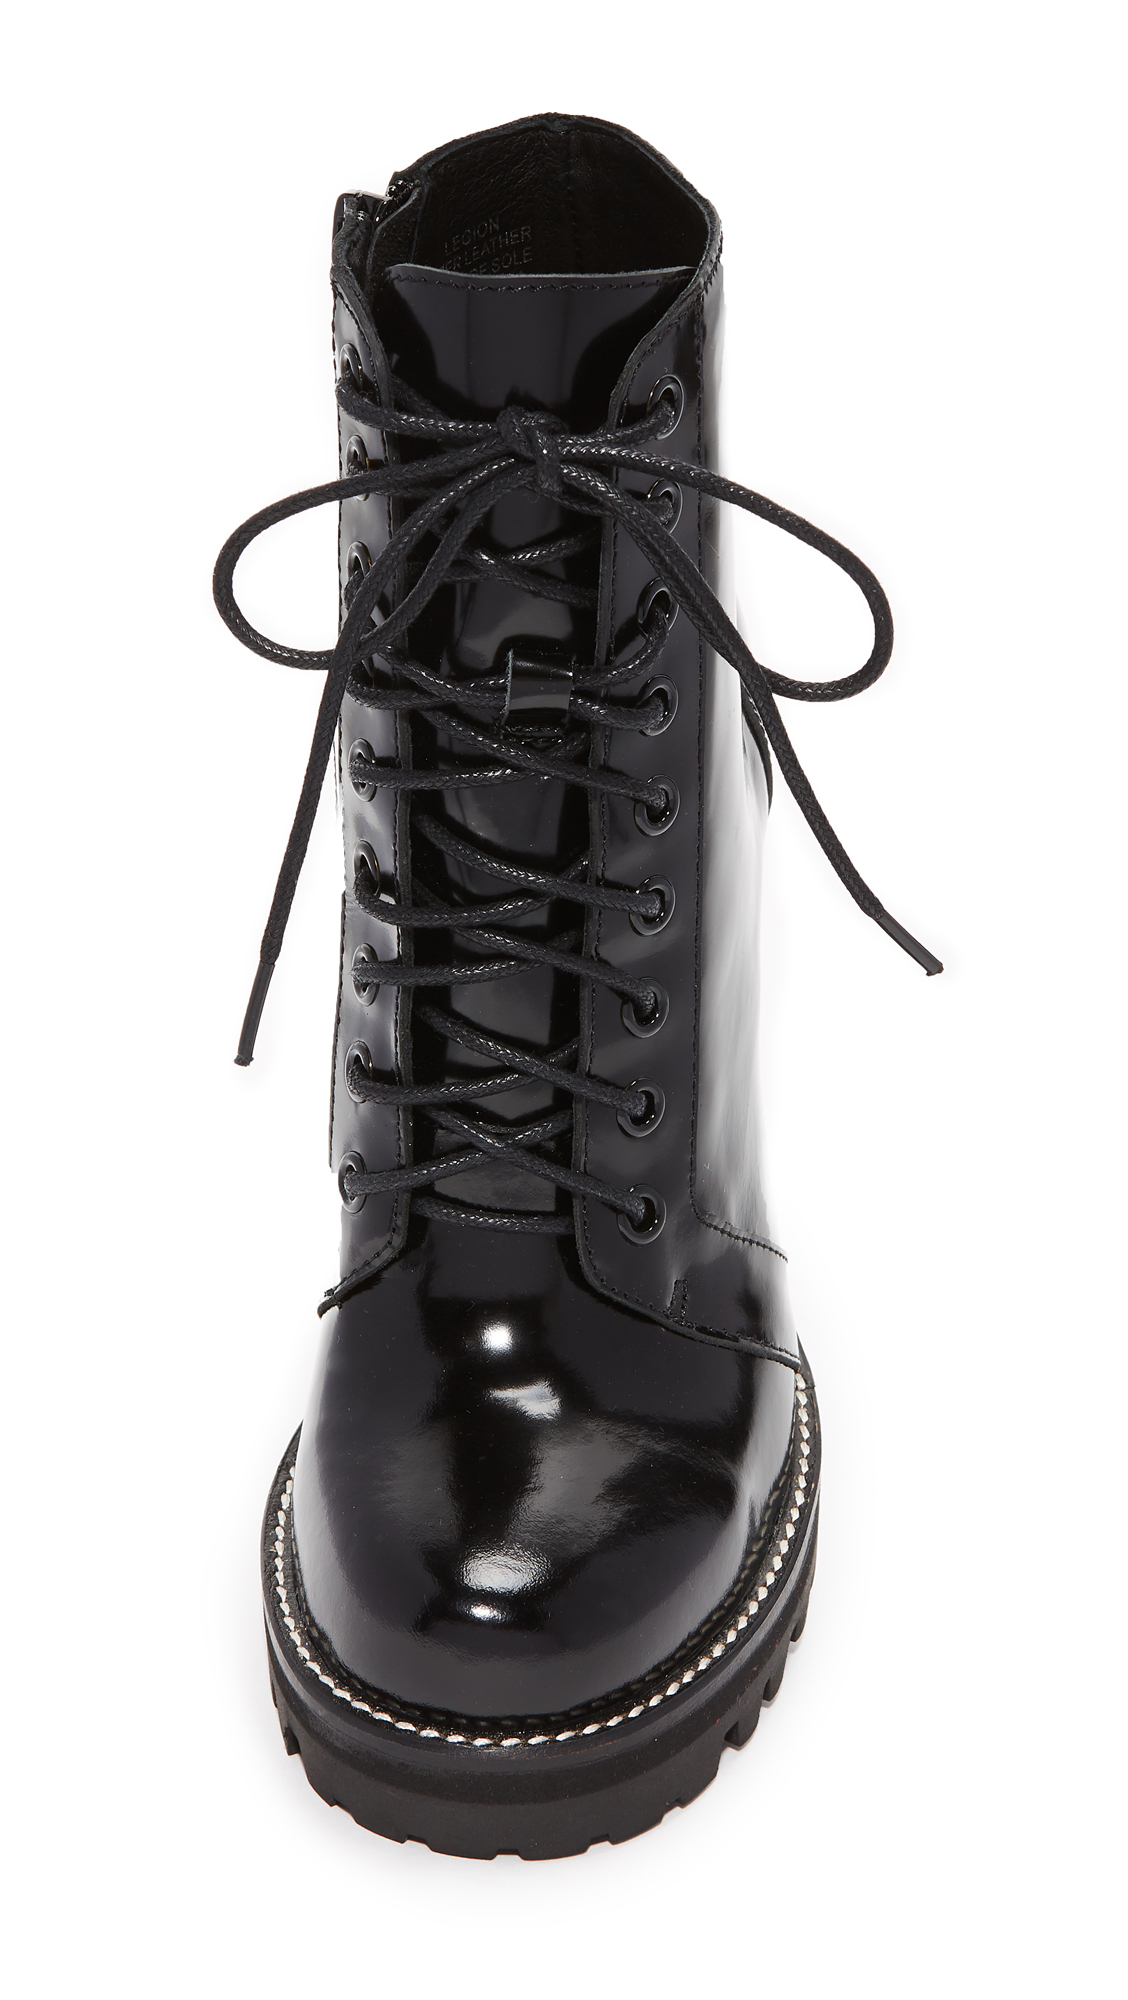 e0822a4df707 Jeffrey Campbell Legion Lace Up High Heel Booties